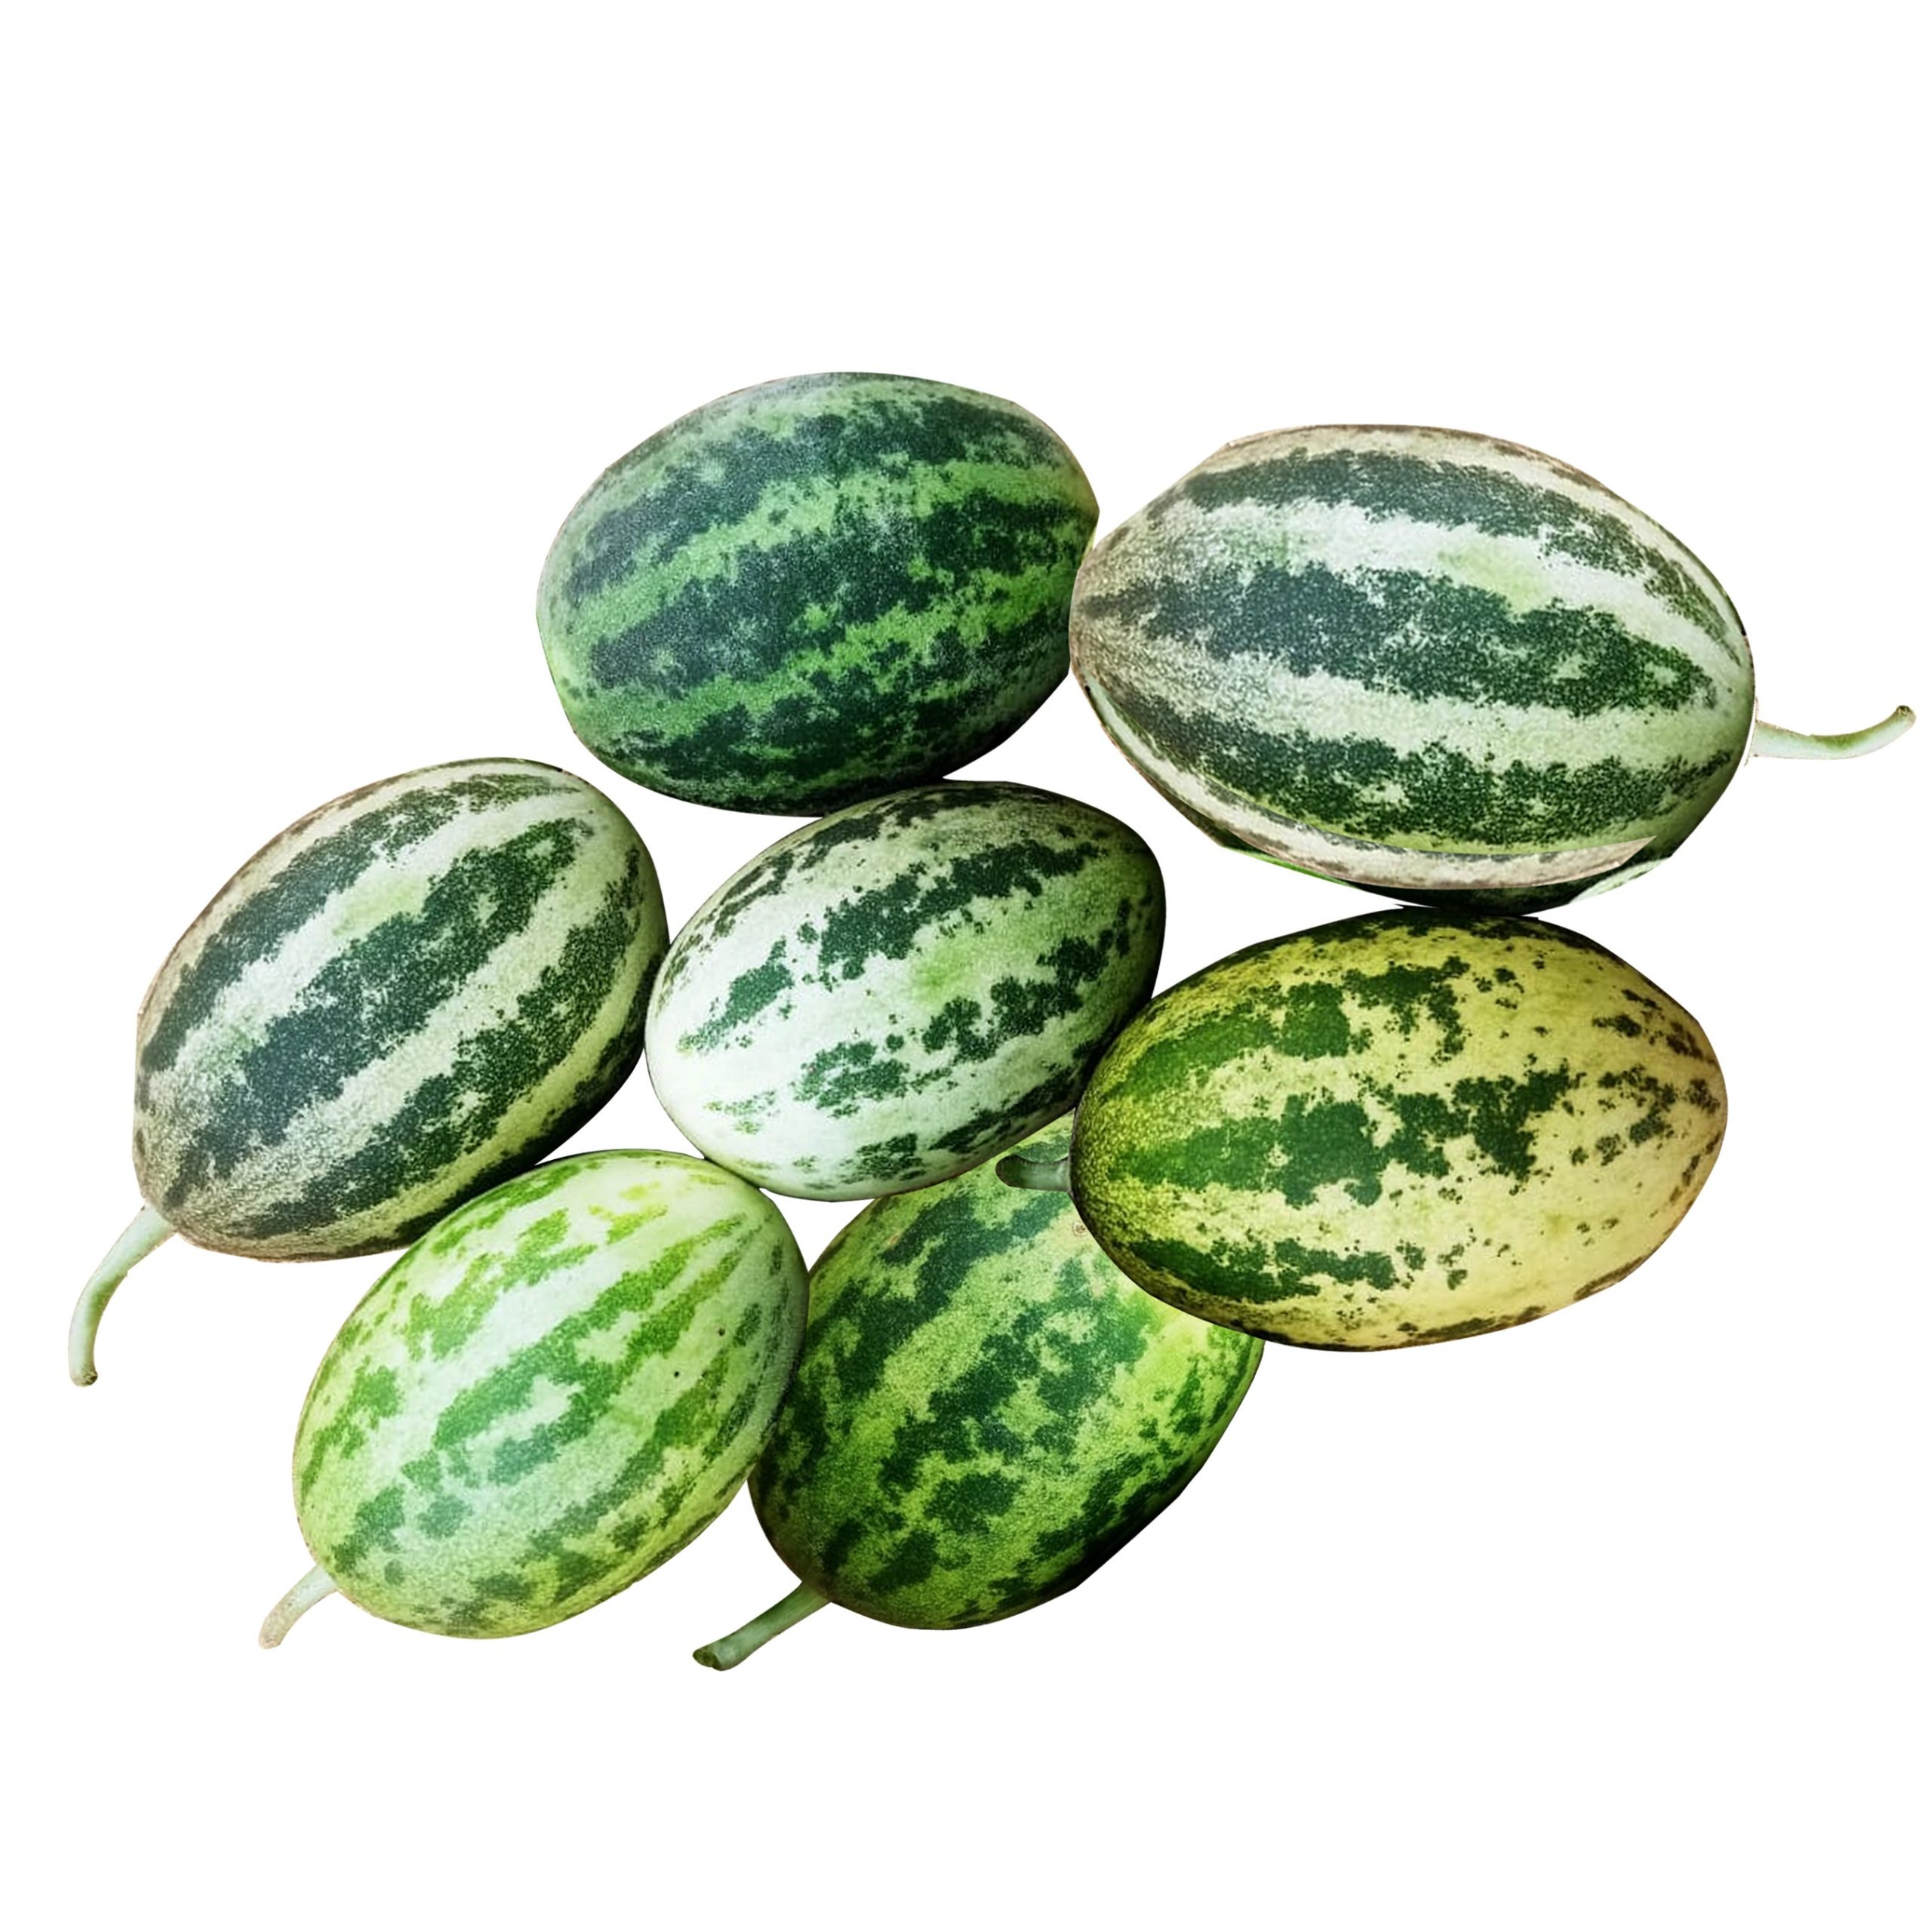 Budamkaya Seeds / Lemon Cucumber Seeds